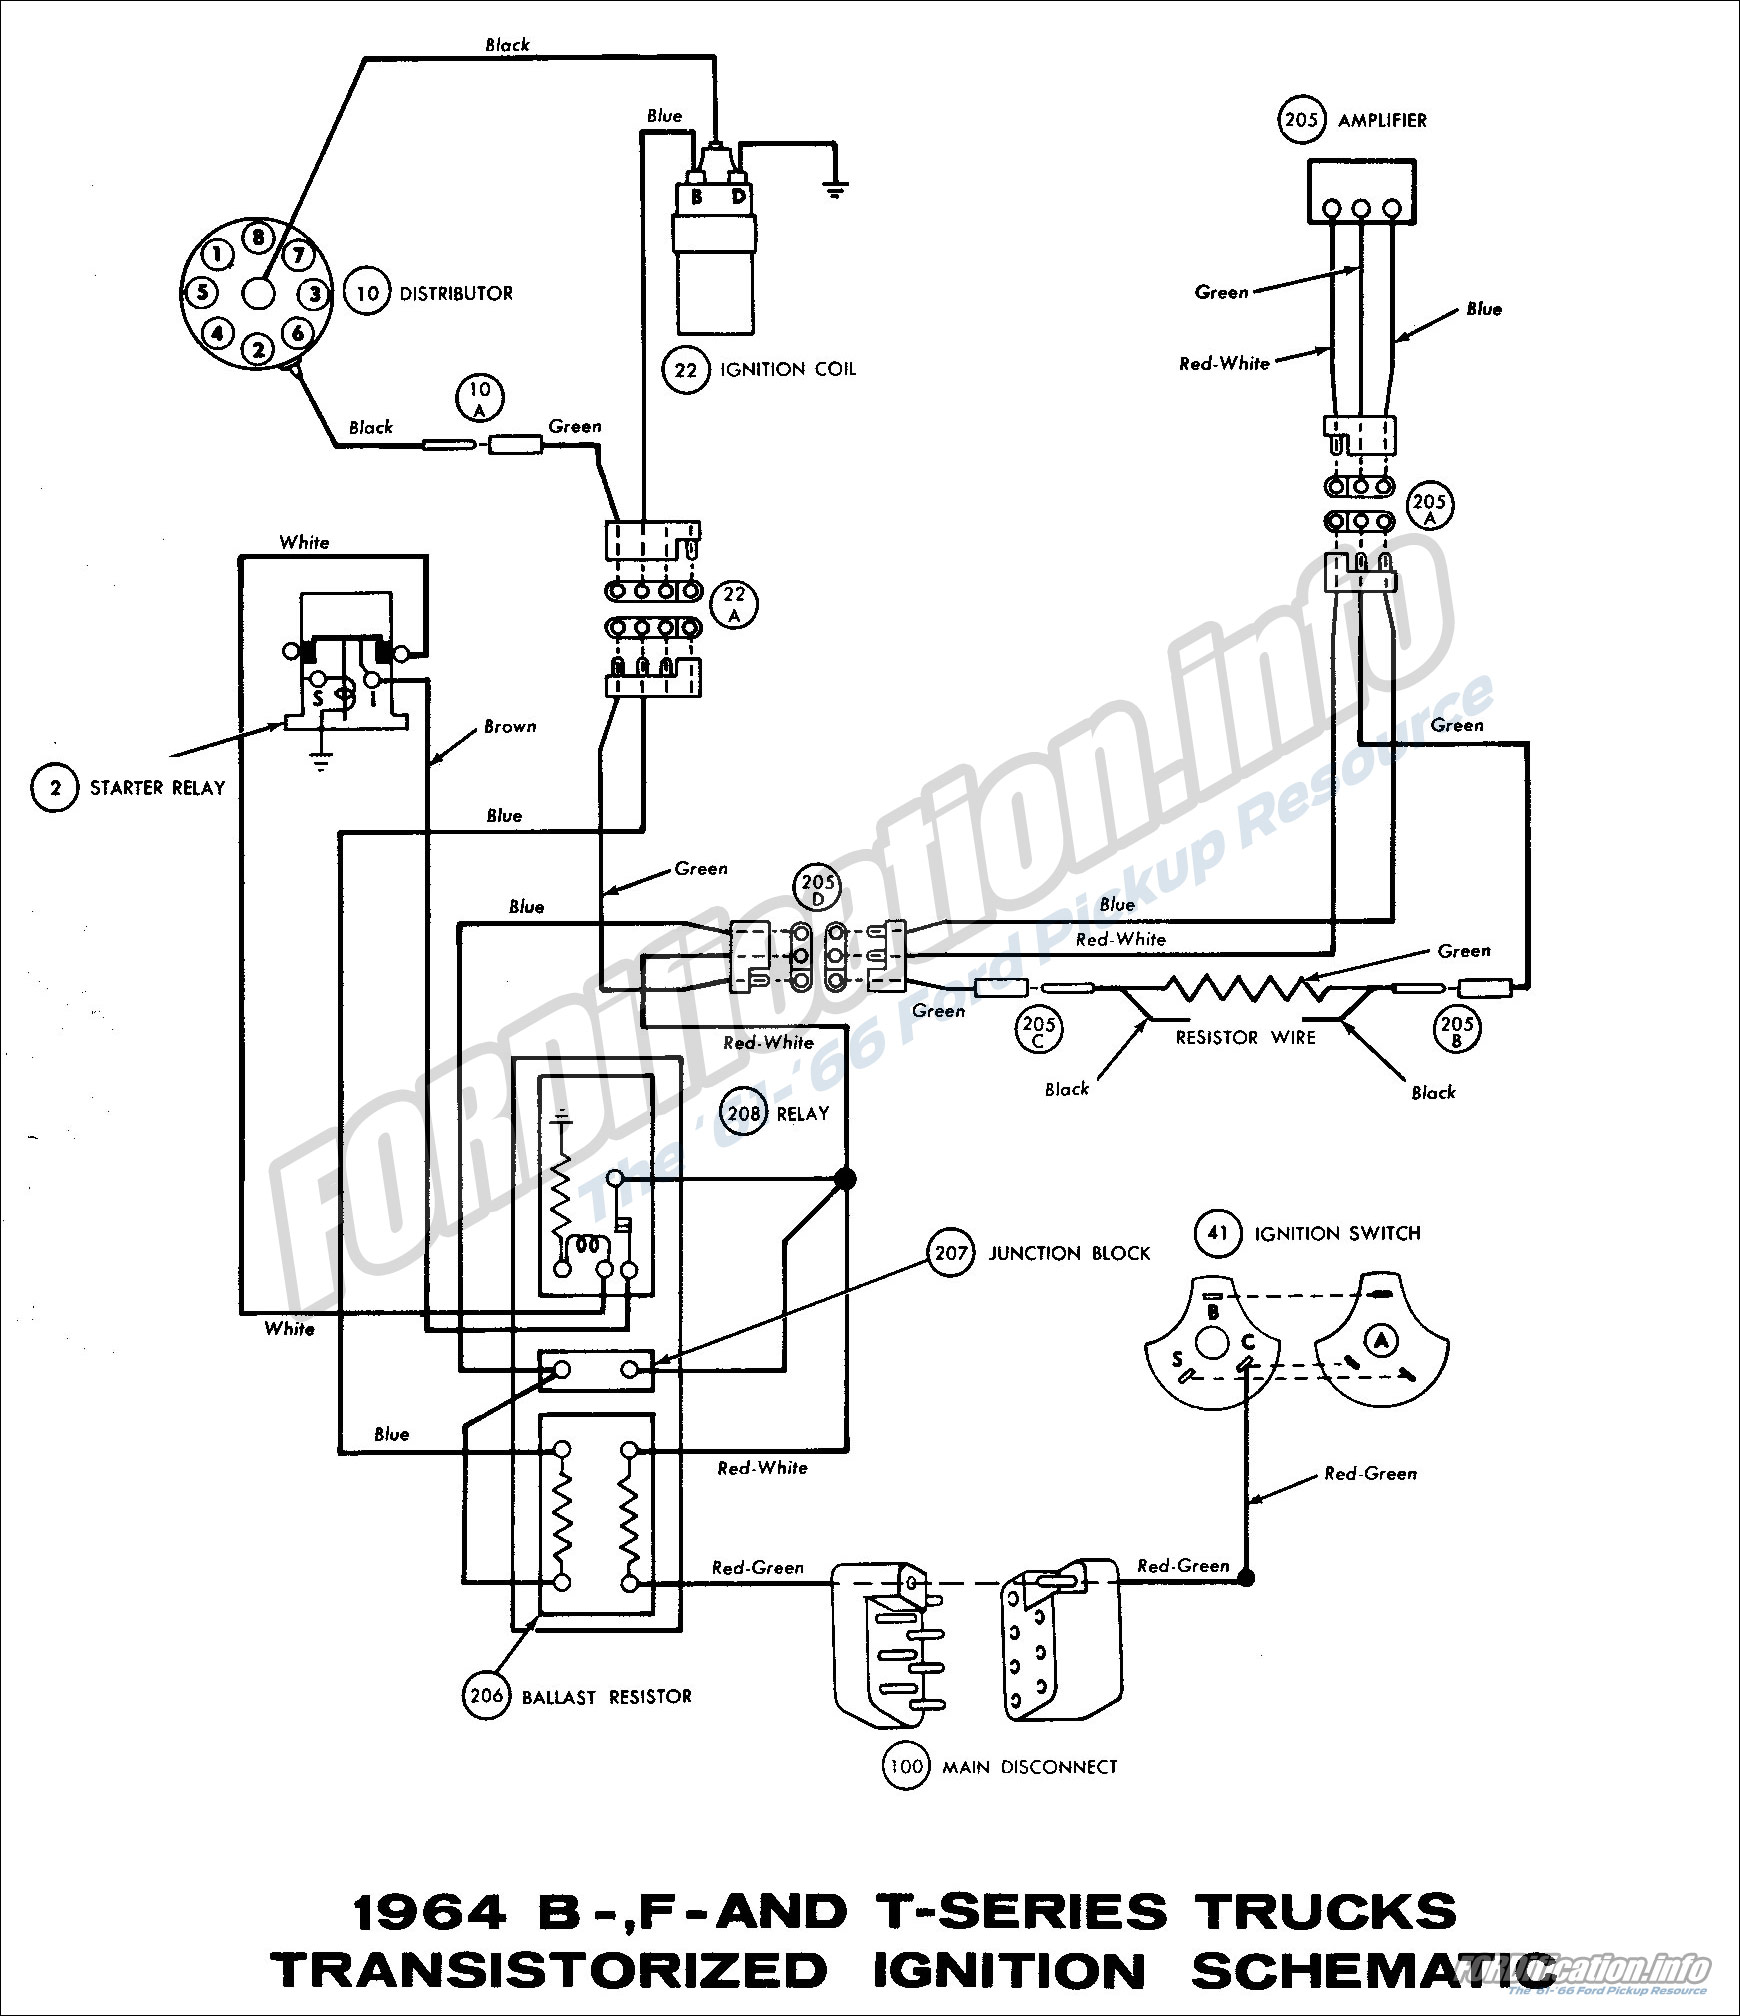 1964 Ford Truck Wiring Diagrams The 61 66 Chrysler Schematic B F And T Series Trucks Transistorized Ignition